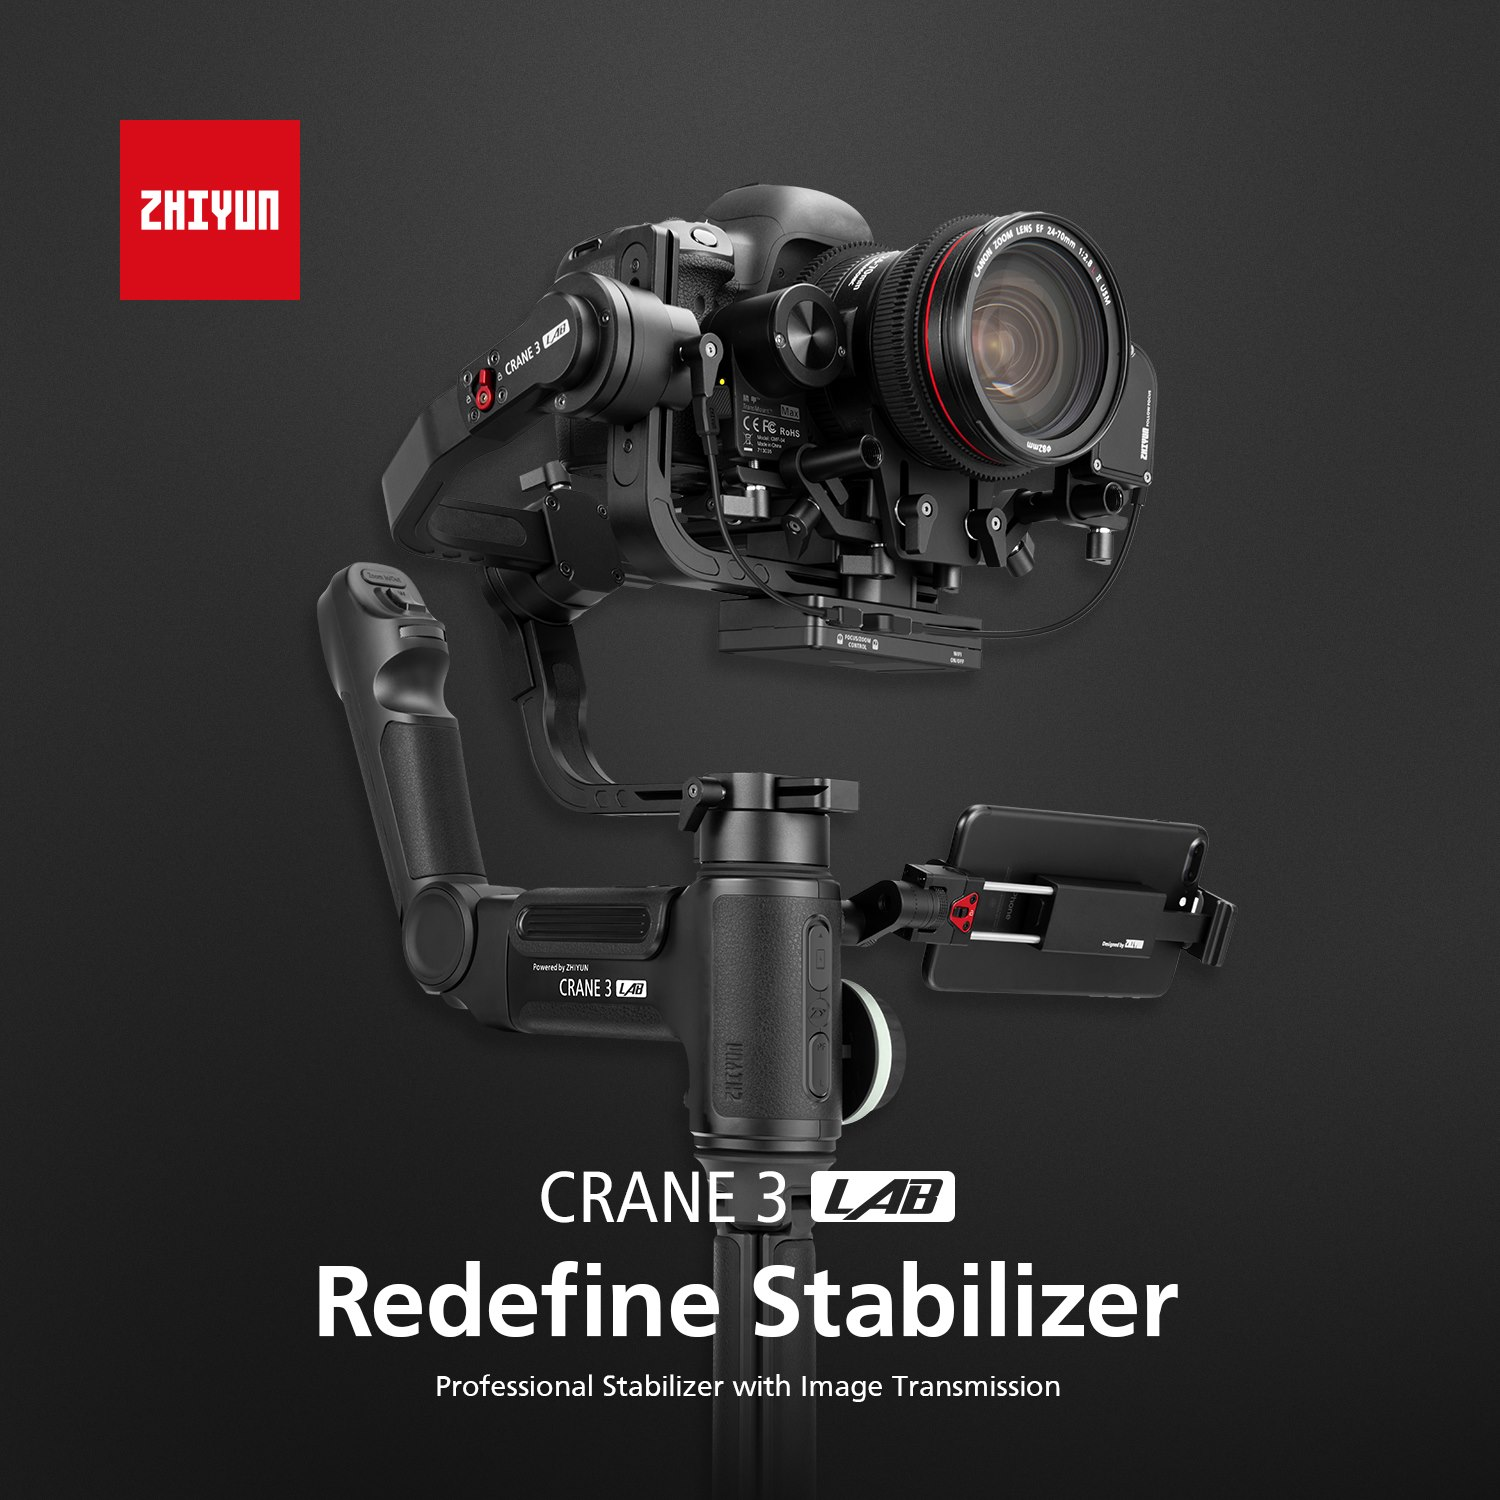 Here is the weights of Zhiyun Crane 3 LAB